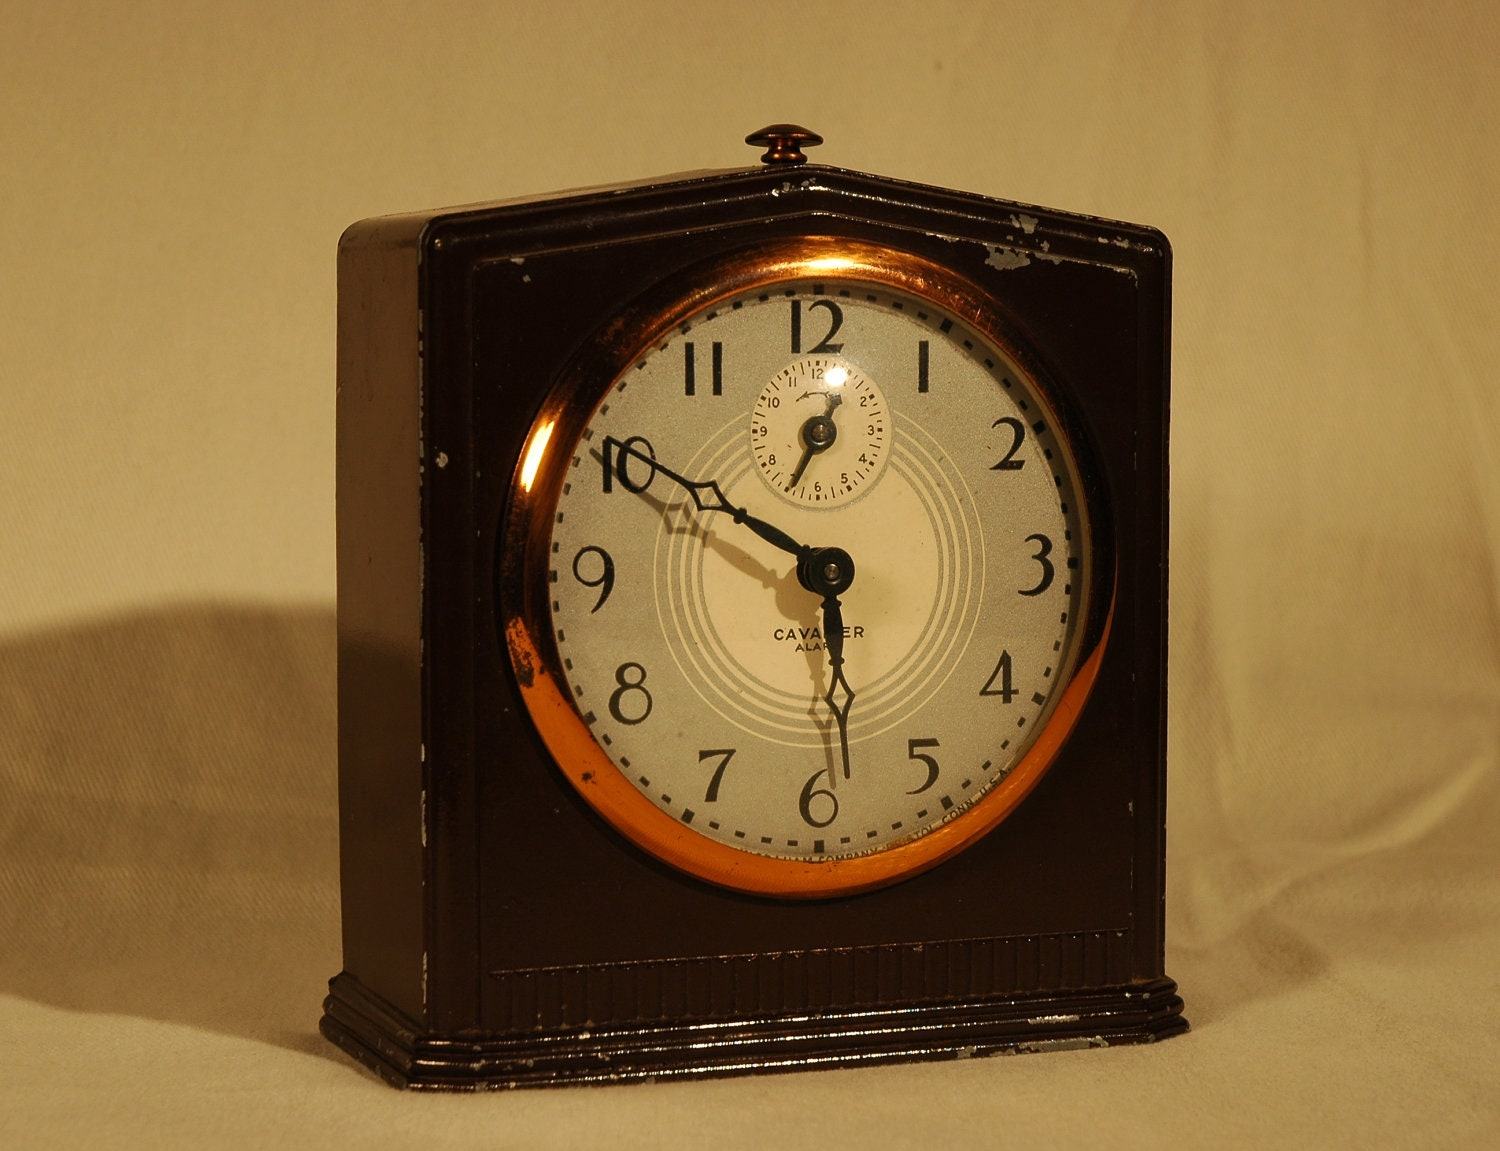 Vintage 1930s Art Deco Ingraham Cavalier Windup Alarm Clock: art deco alarm clocks